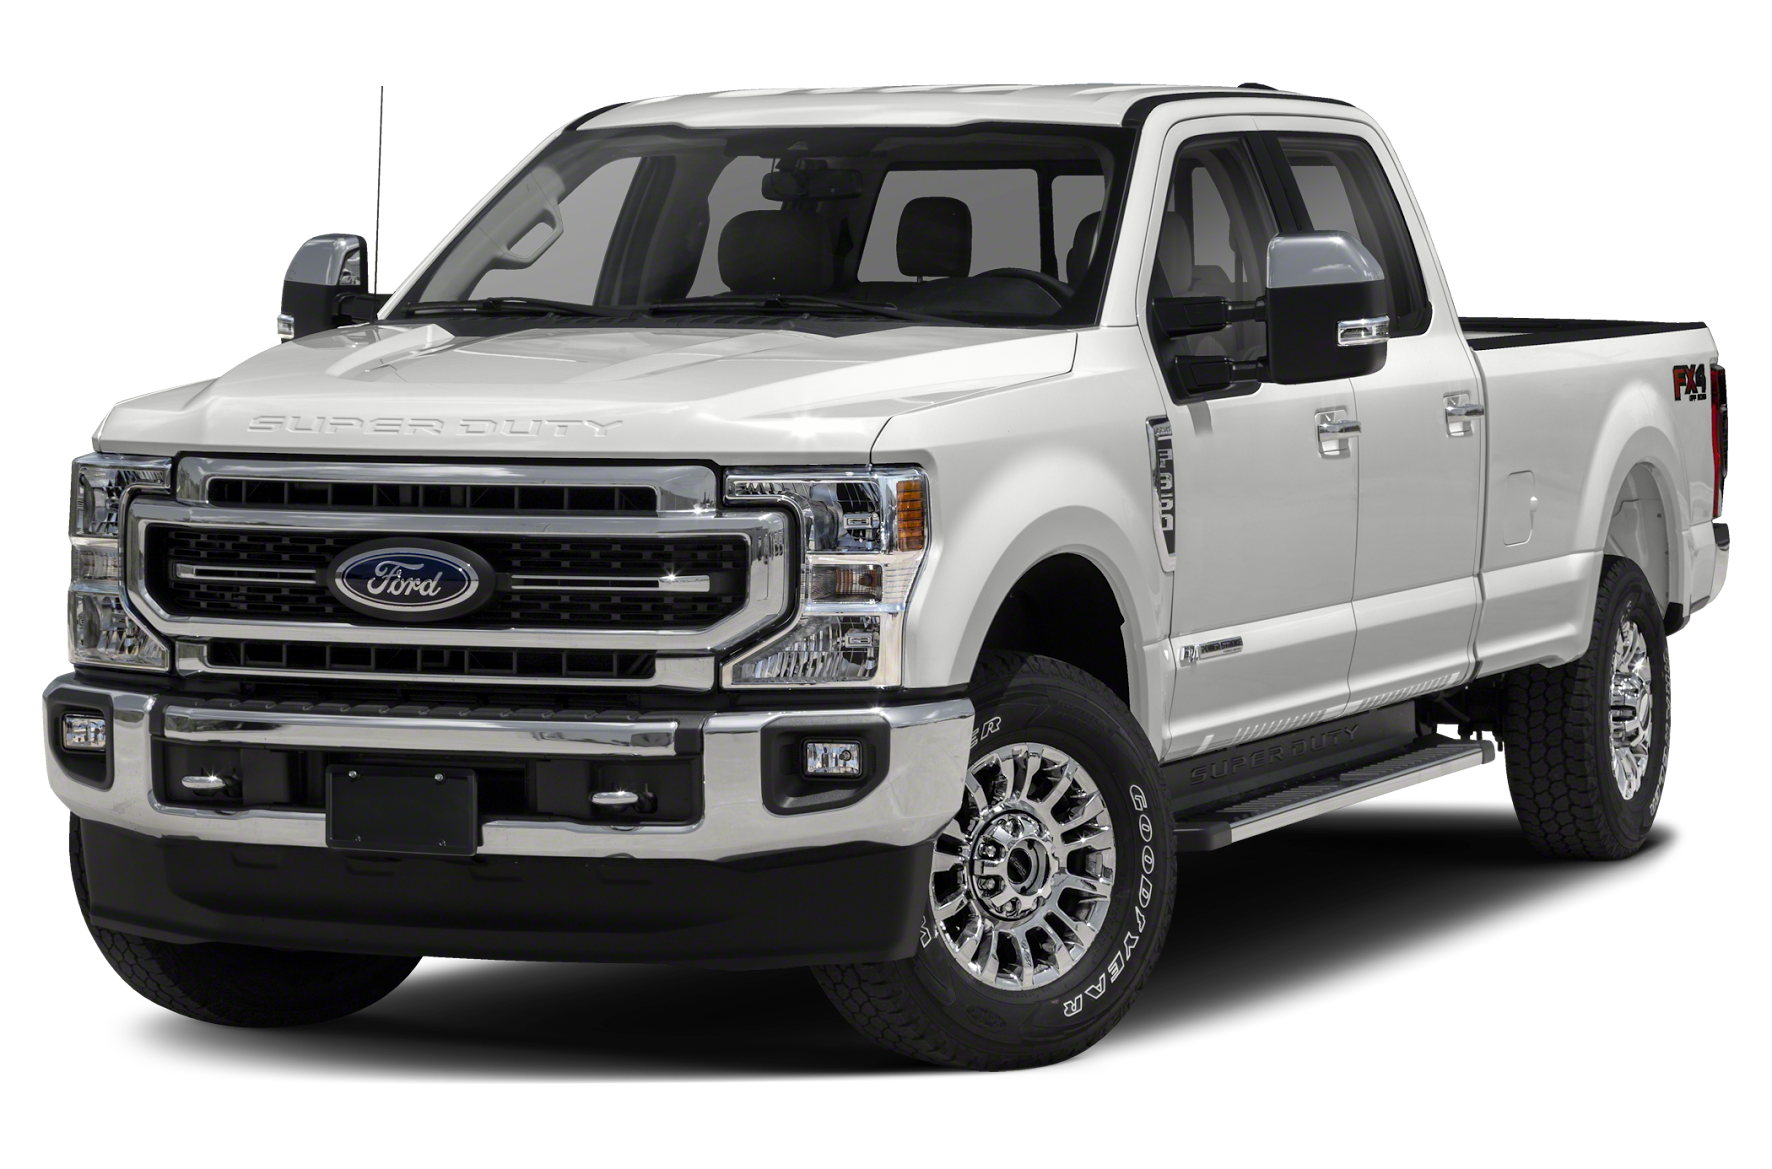 Ford F-350 for Sale in Sarasota